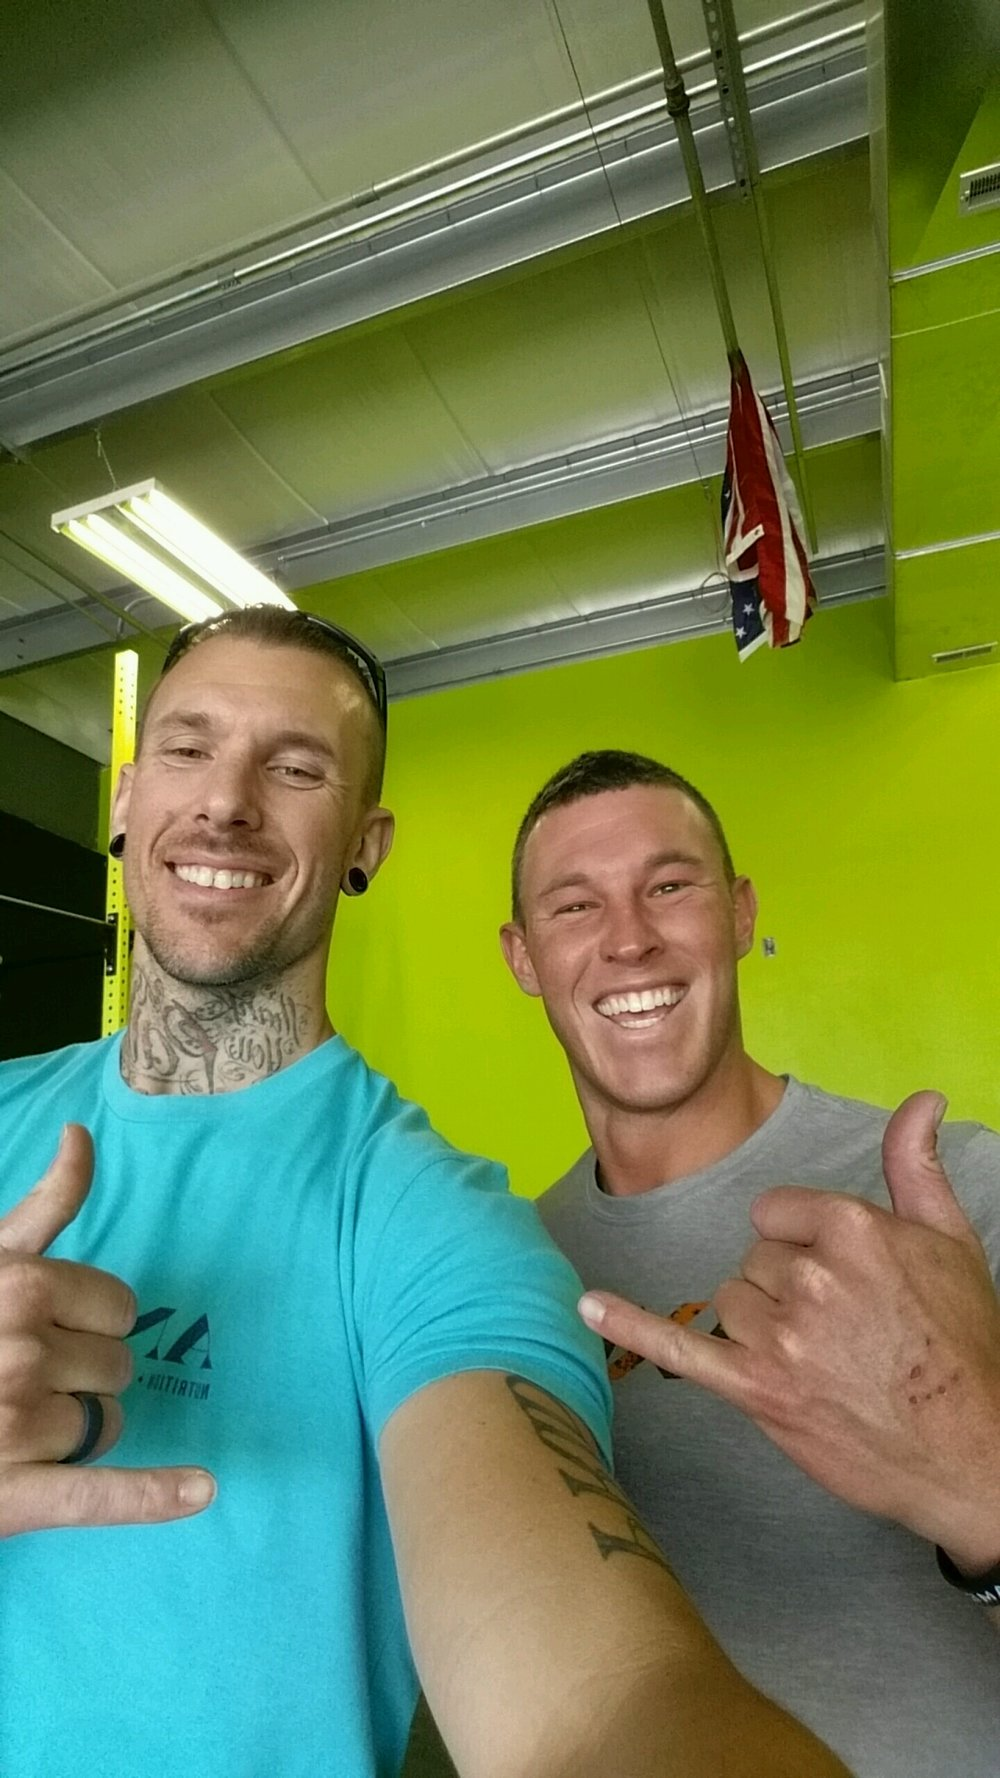 Hebrews 12:11 Fitness - Grimes, IA - Owner Jeff Hambrecht and I after the workout